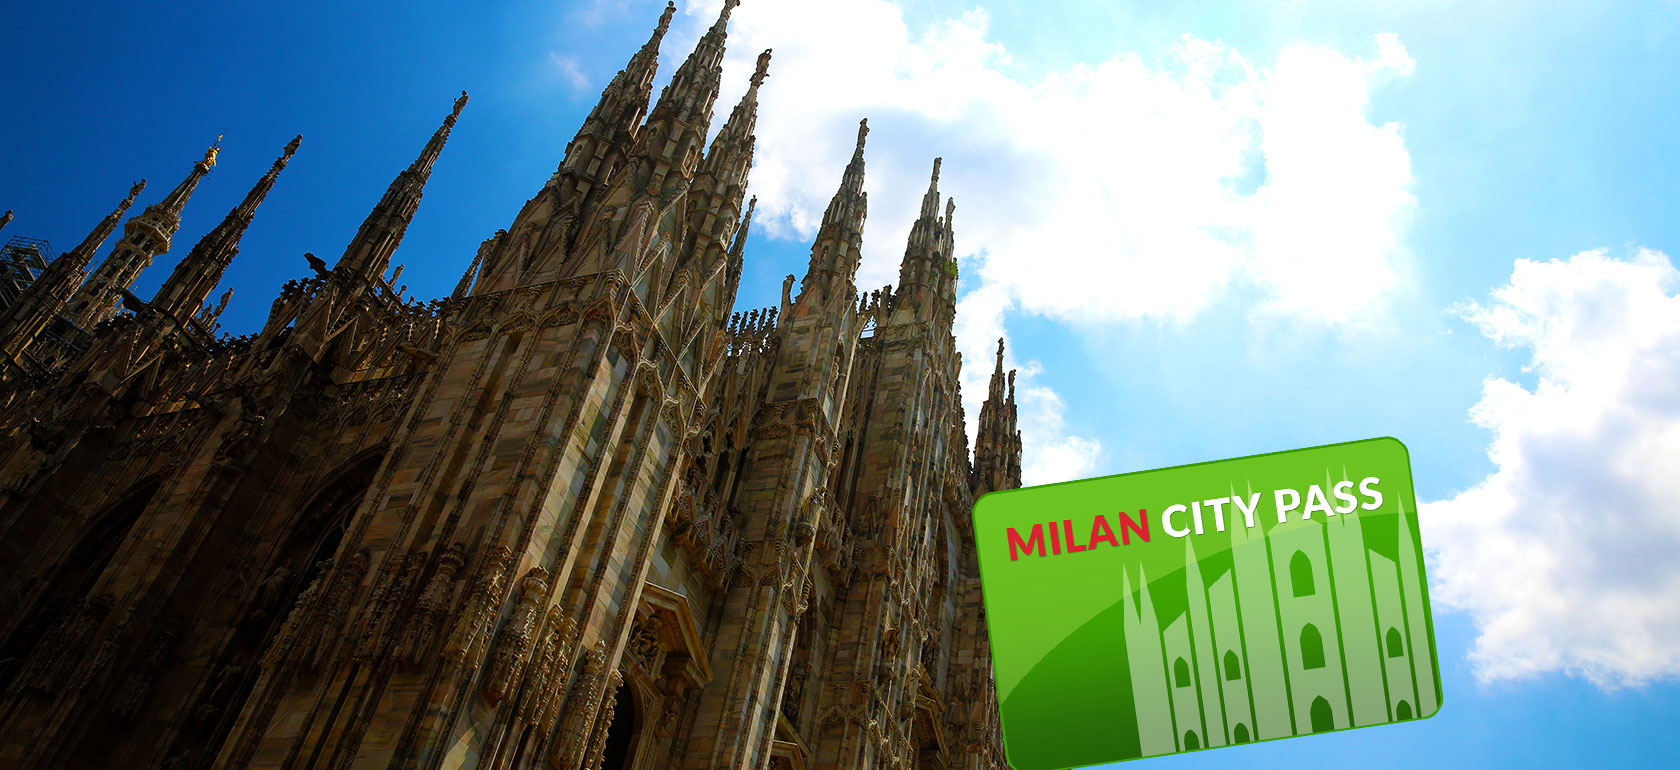 Milan-Last Supper City Pass (includes airport transfer)